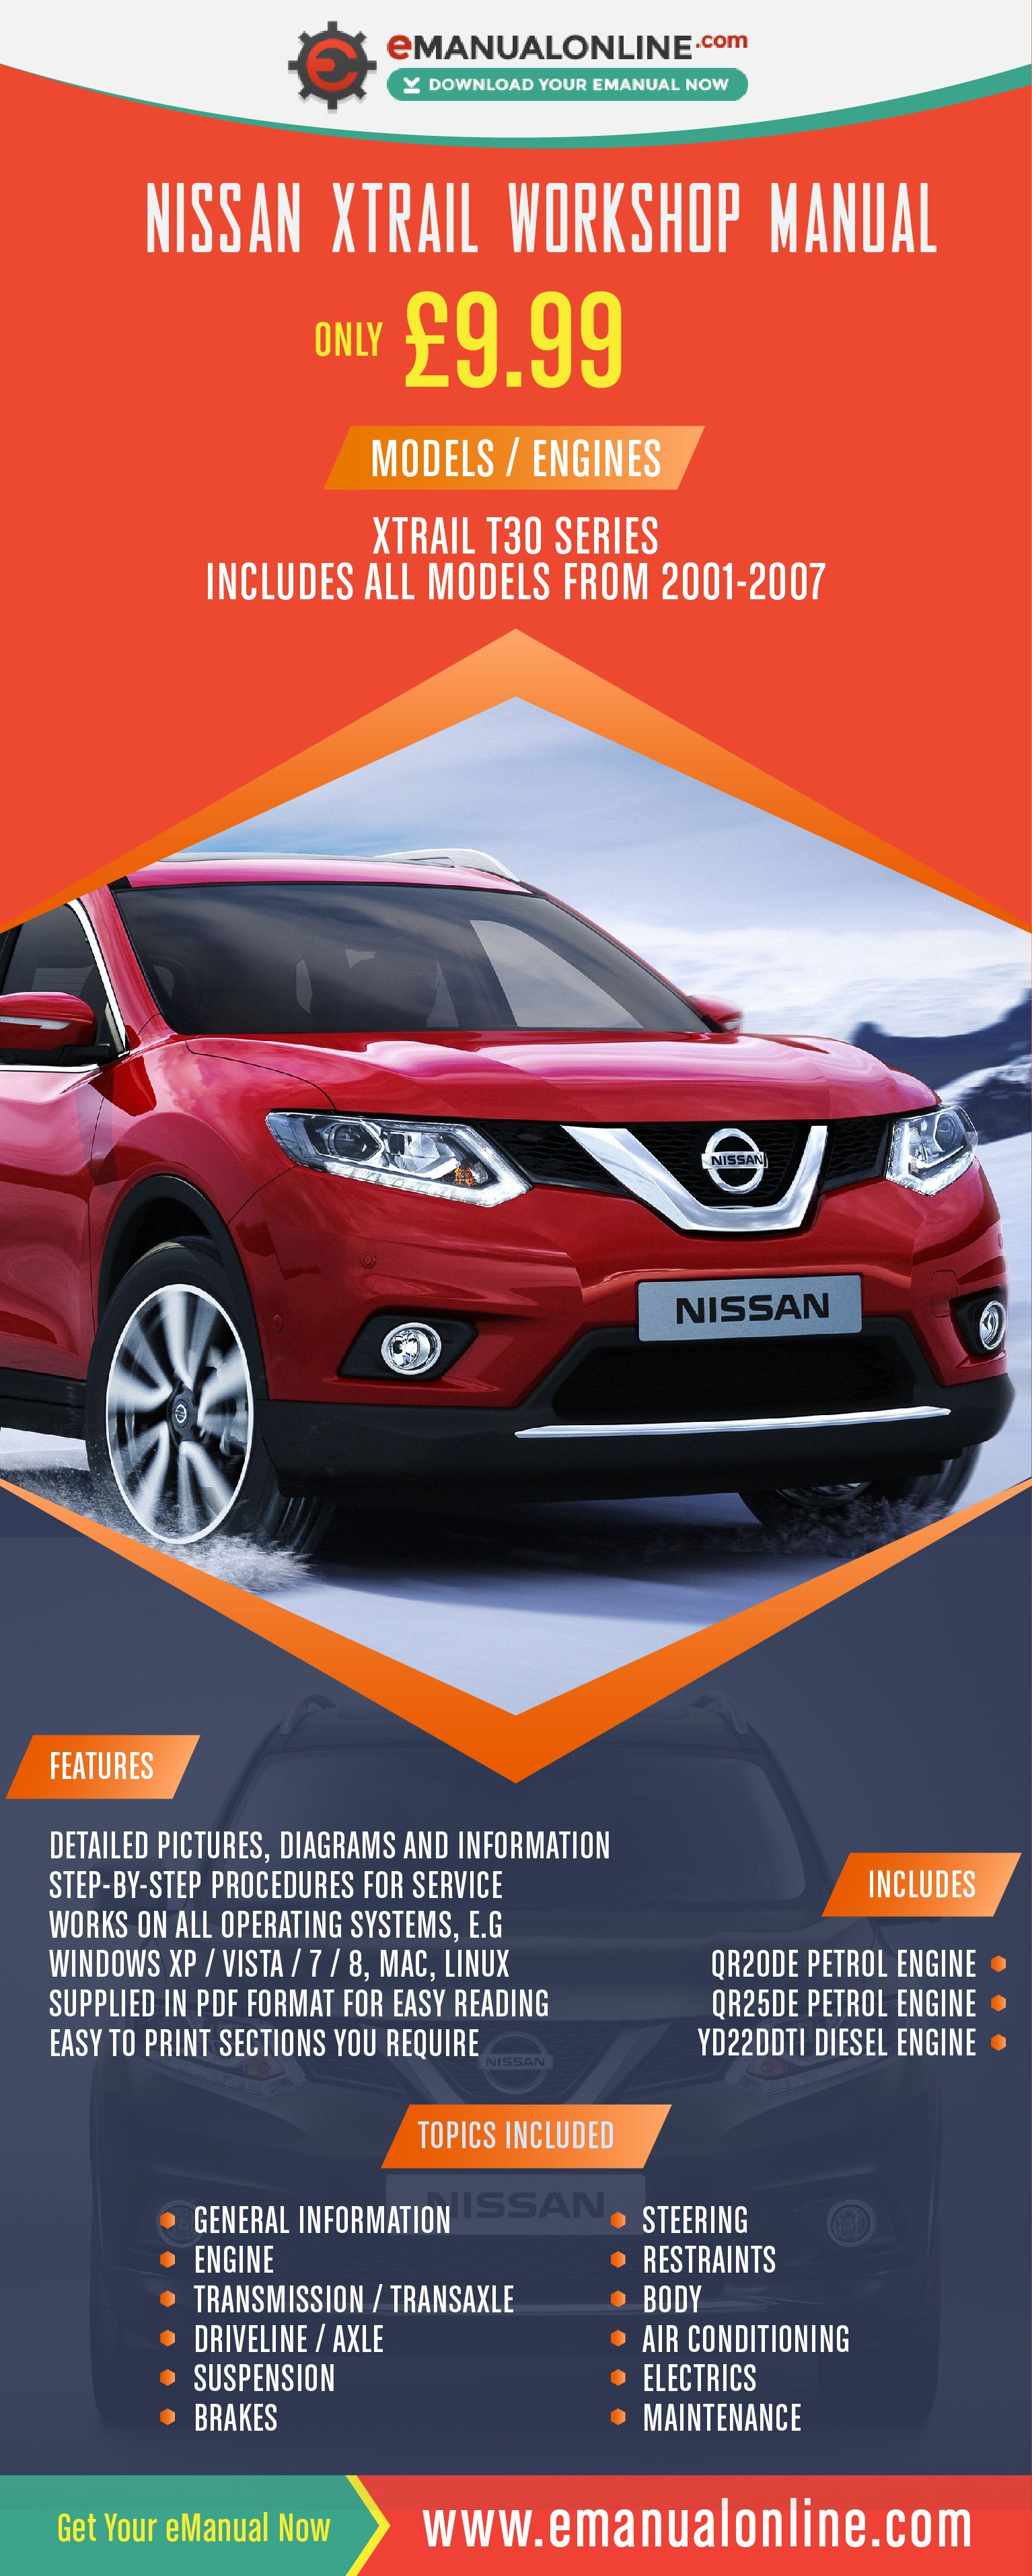 nissan xtrail workshop manual this is the official workshop repair rh pinterest com